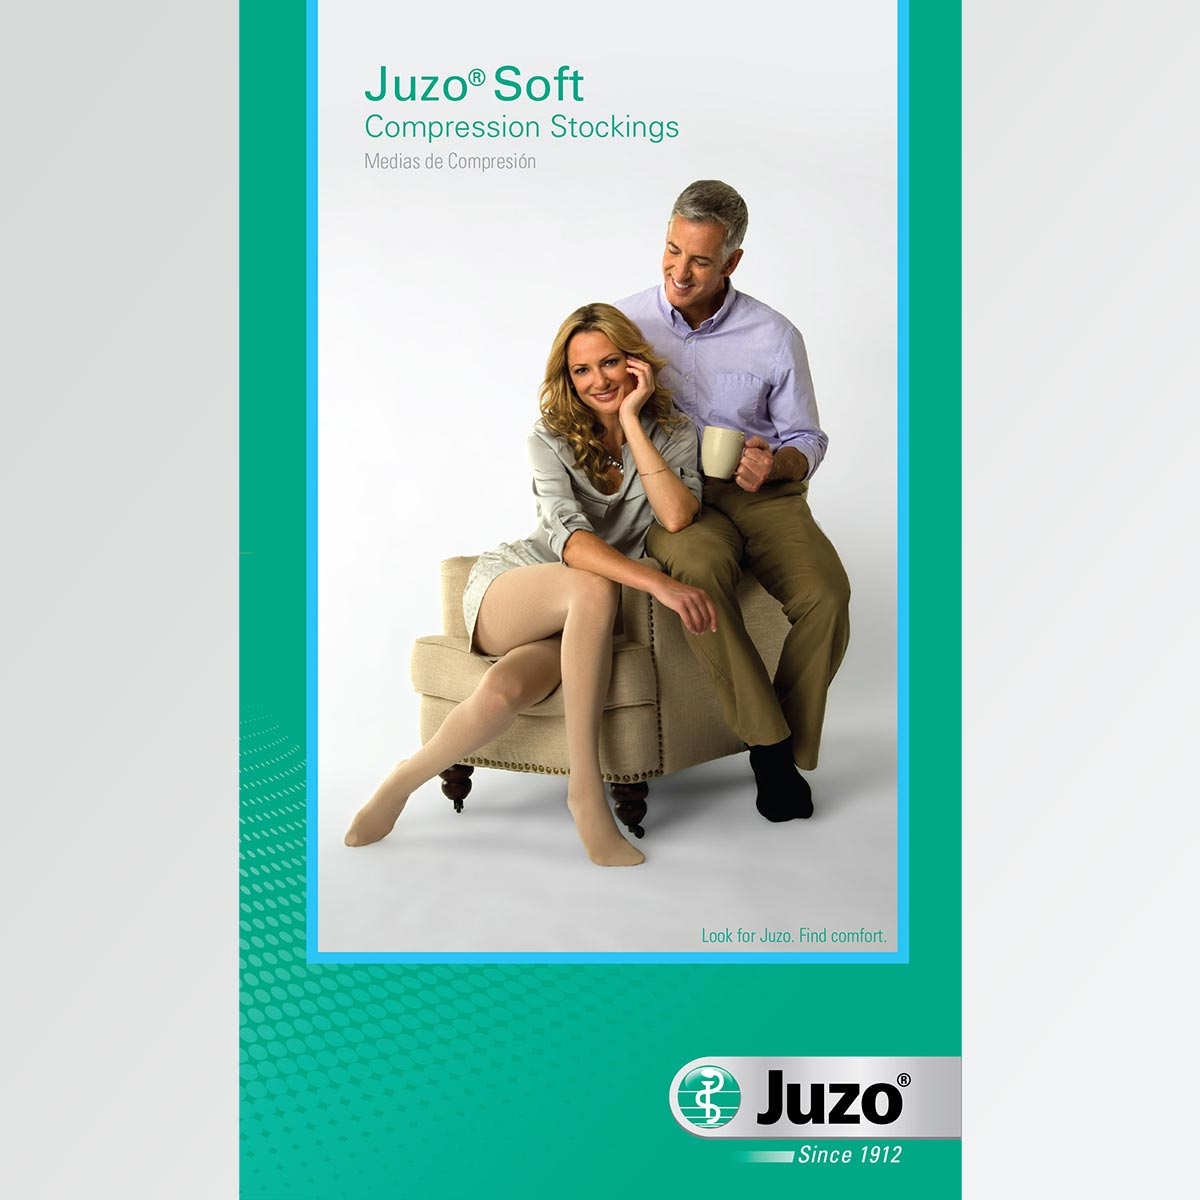 Juzo Soft Compression Stockings